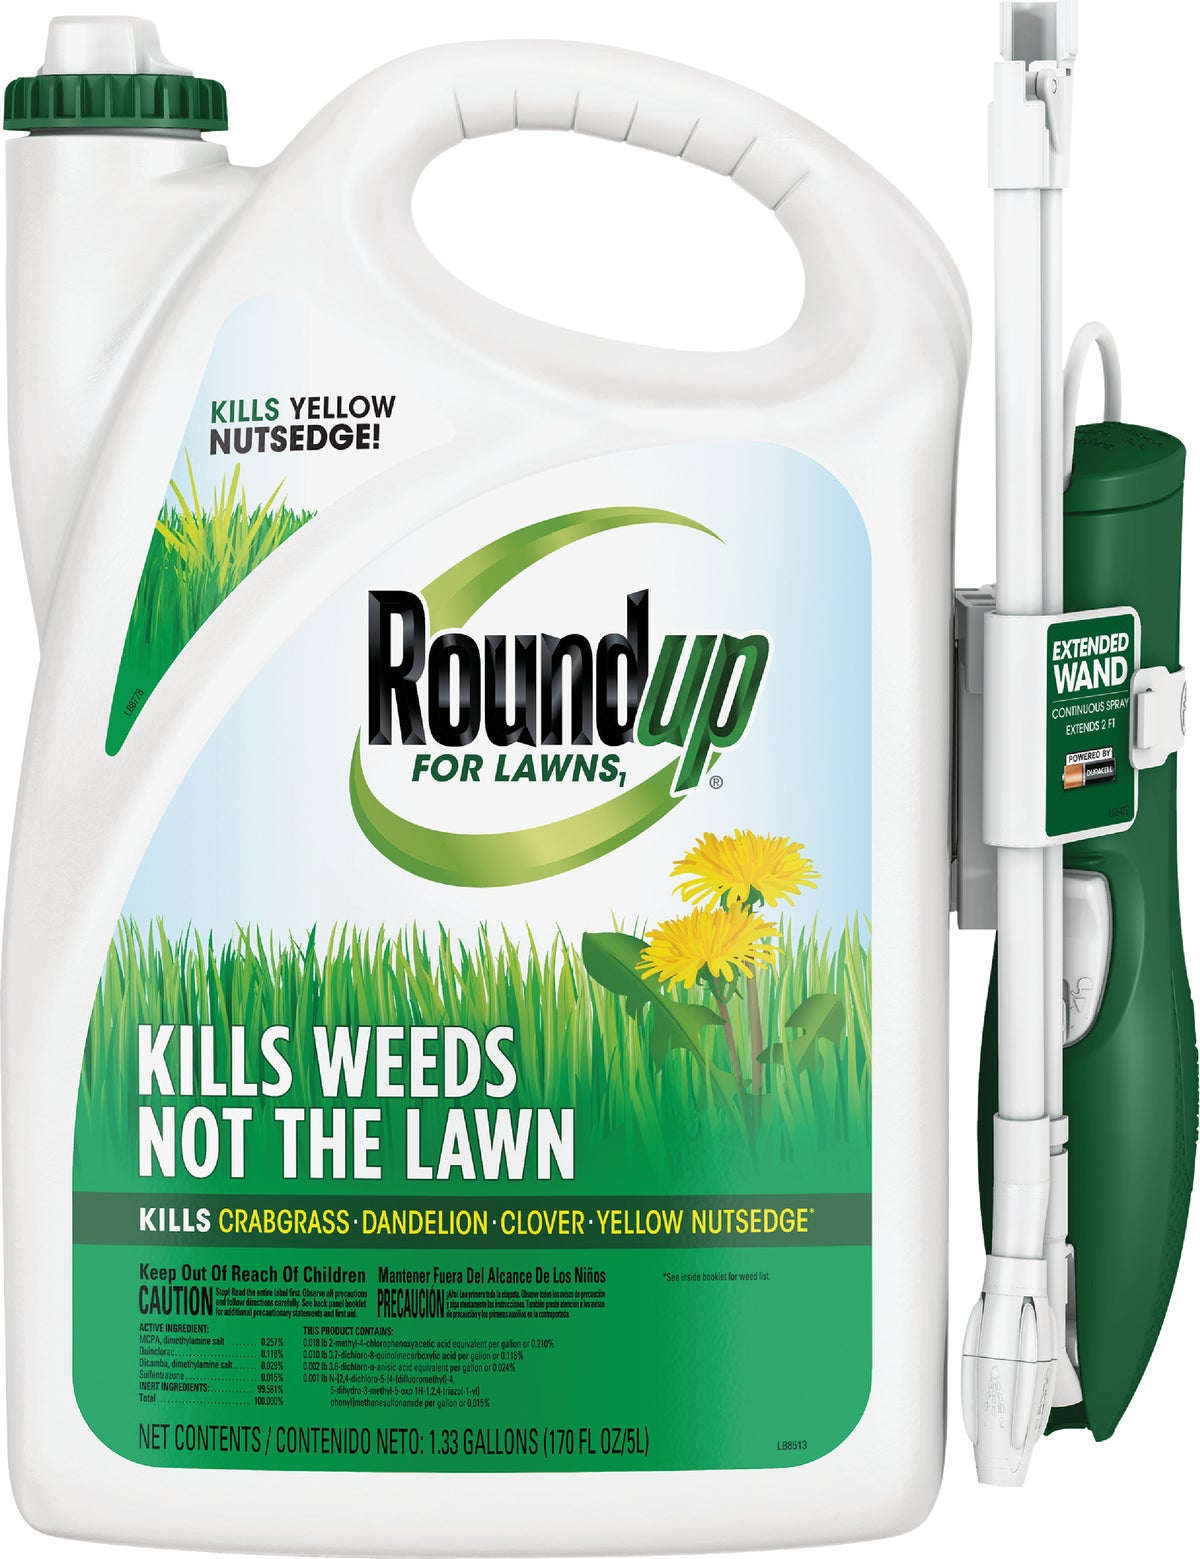 Buy Roundup For Lawns Northern Formula Weed Killer 1.33 ...